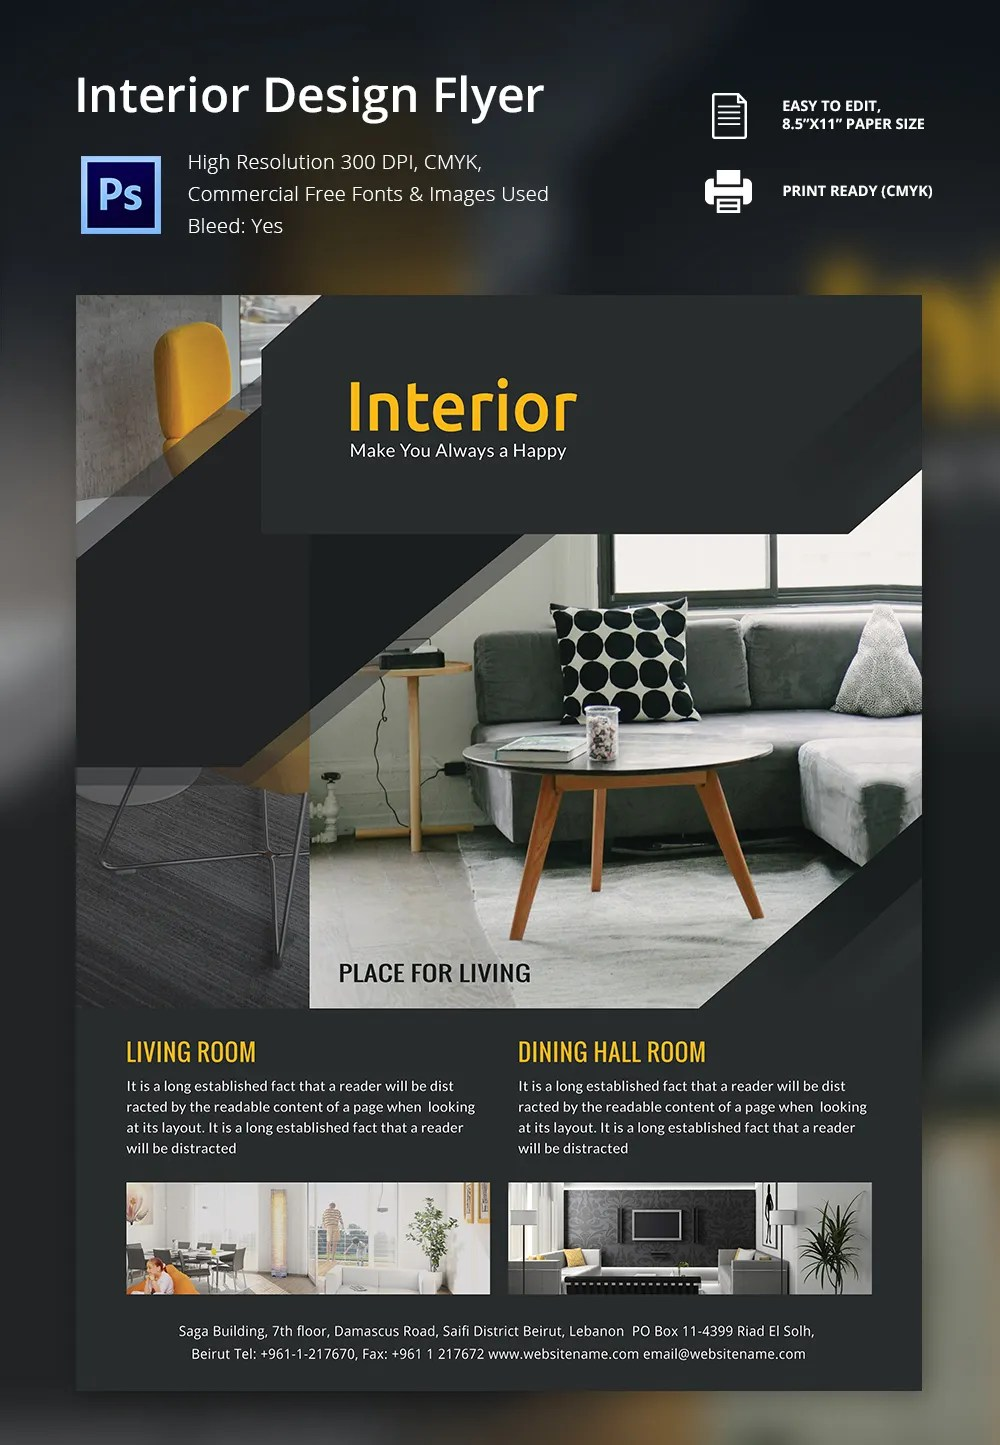 Vibration Analysis Fft Psd And Spectrogram Basics Free 17 Interior Decoration Brochure – Free Word Psd Pdf